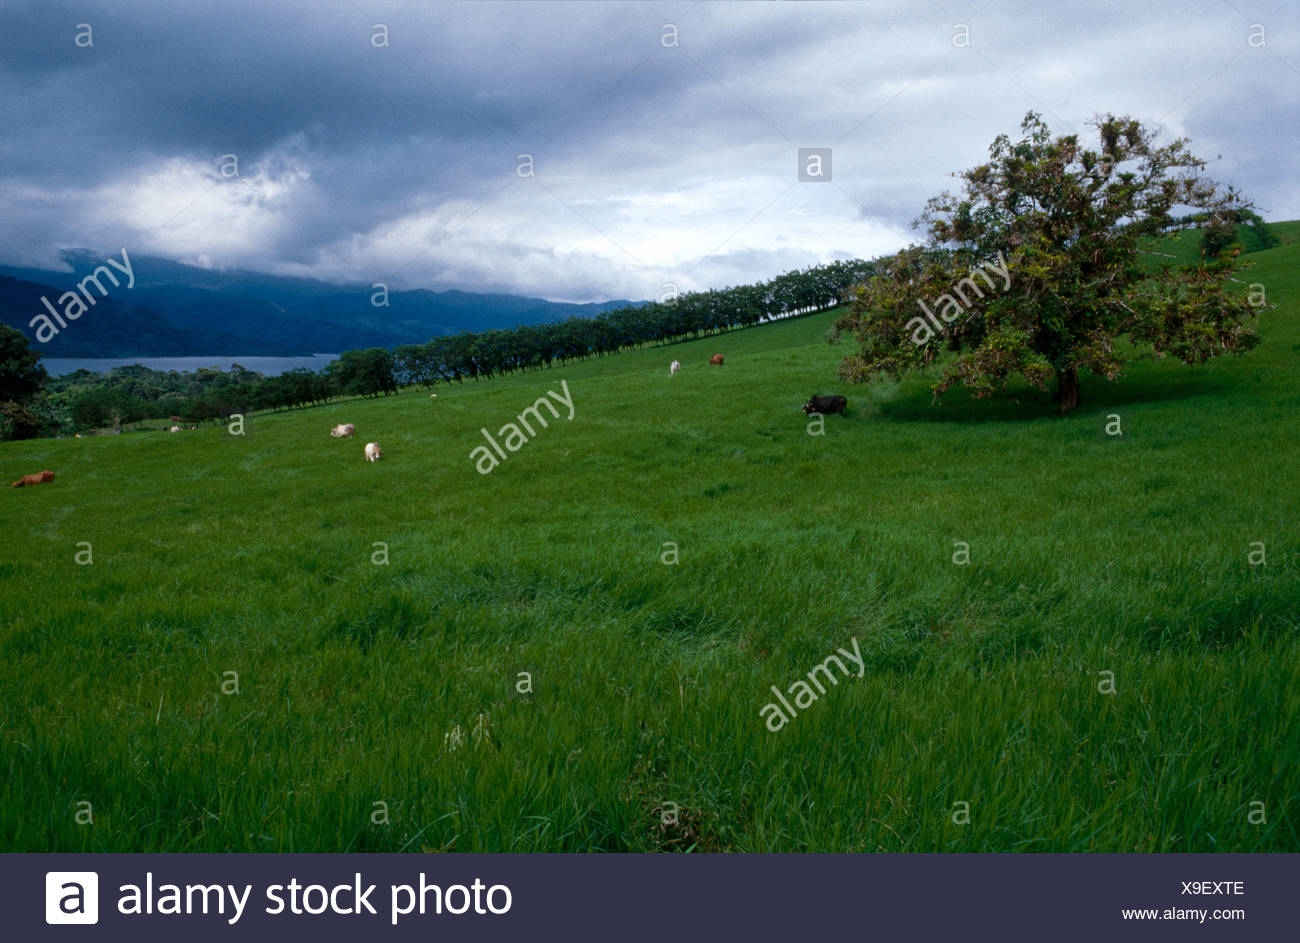 Cows grazing on pastureland, Costa Rica - Stock Image